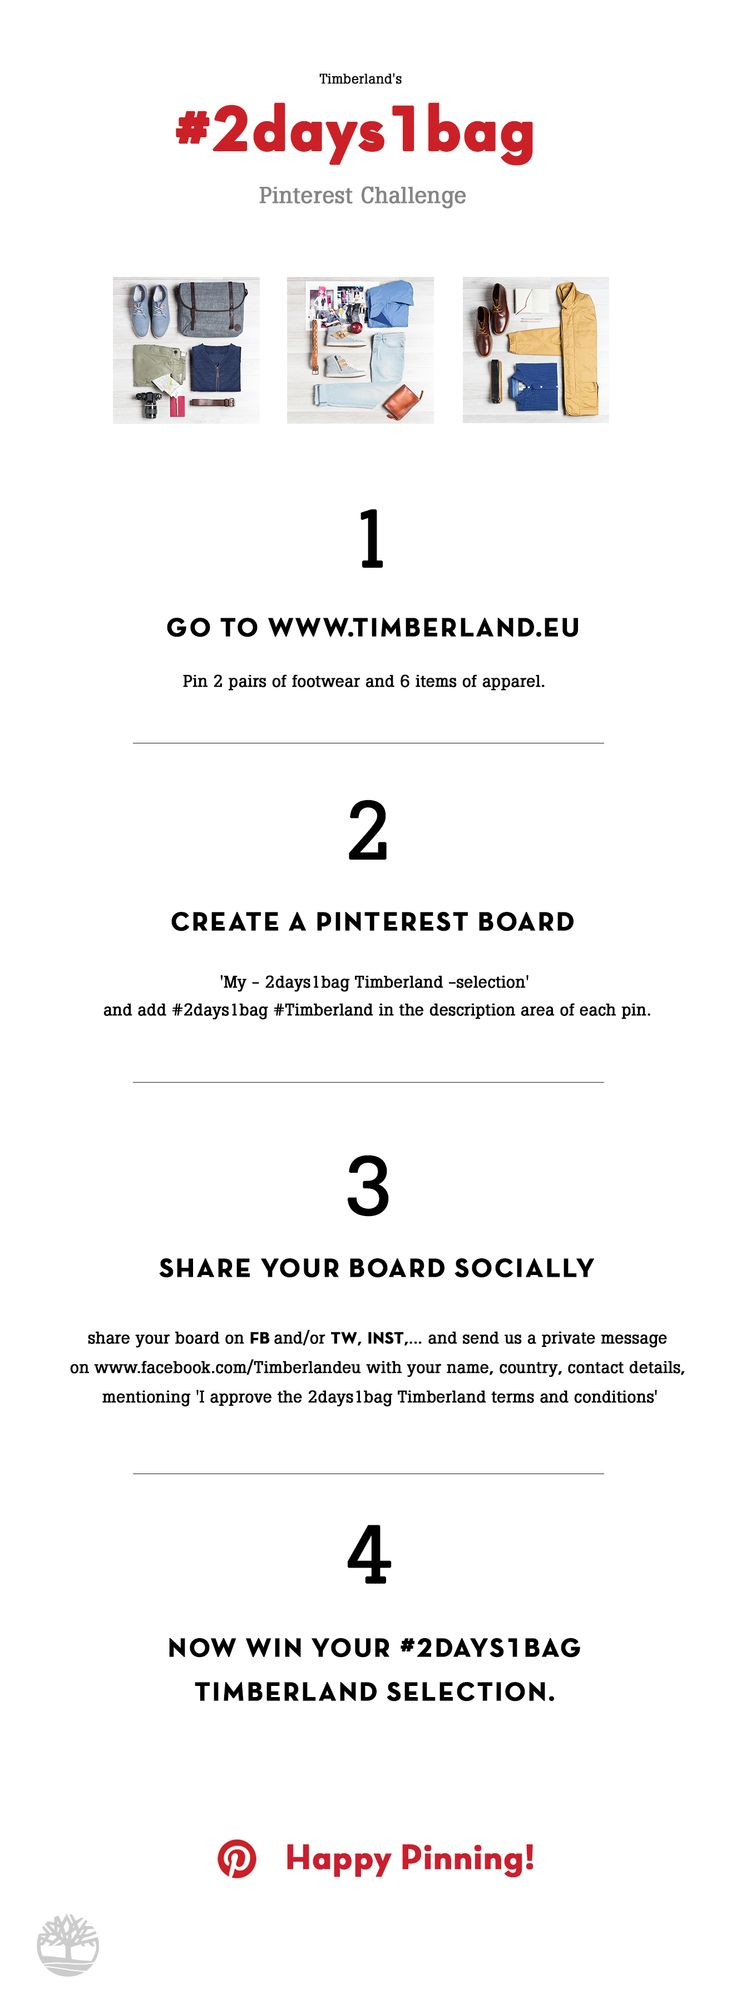 You deserve a challenge! Go to www.timberland.eu, pin 2 pairs of footwear & 6 apparel, share socially & win your outfit.  Pinterest Challenge Rules: https://drive.google.com/file/d/0B1yBBq1rmAHGMk9MLWVDN1AxMFE/view?usp=sharing